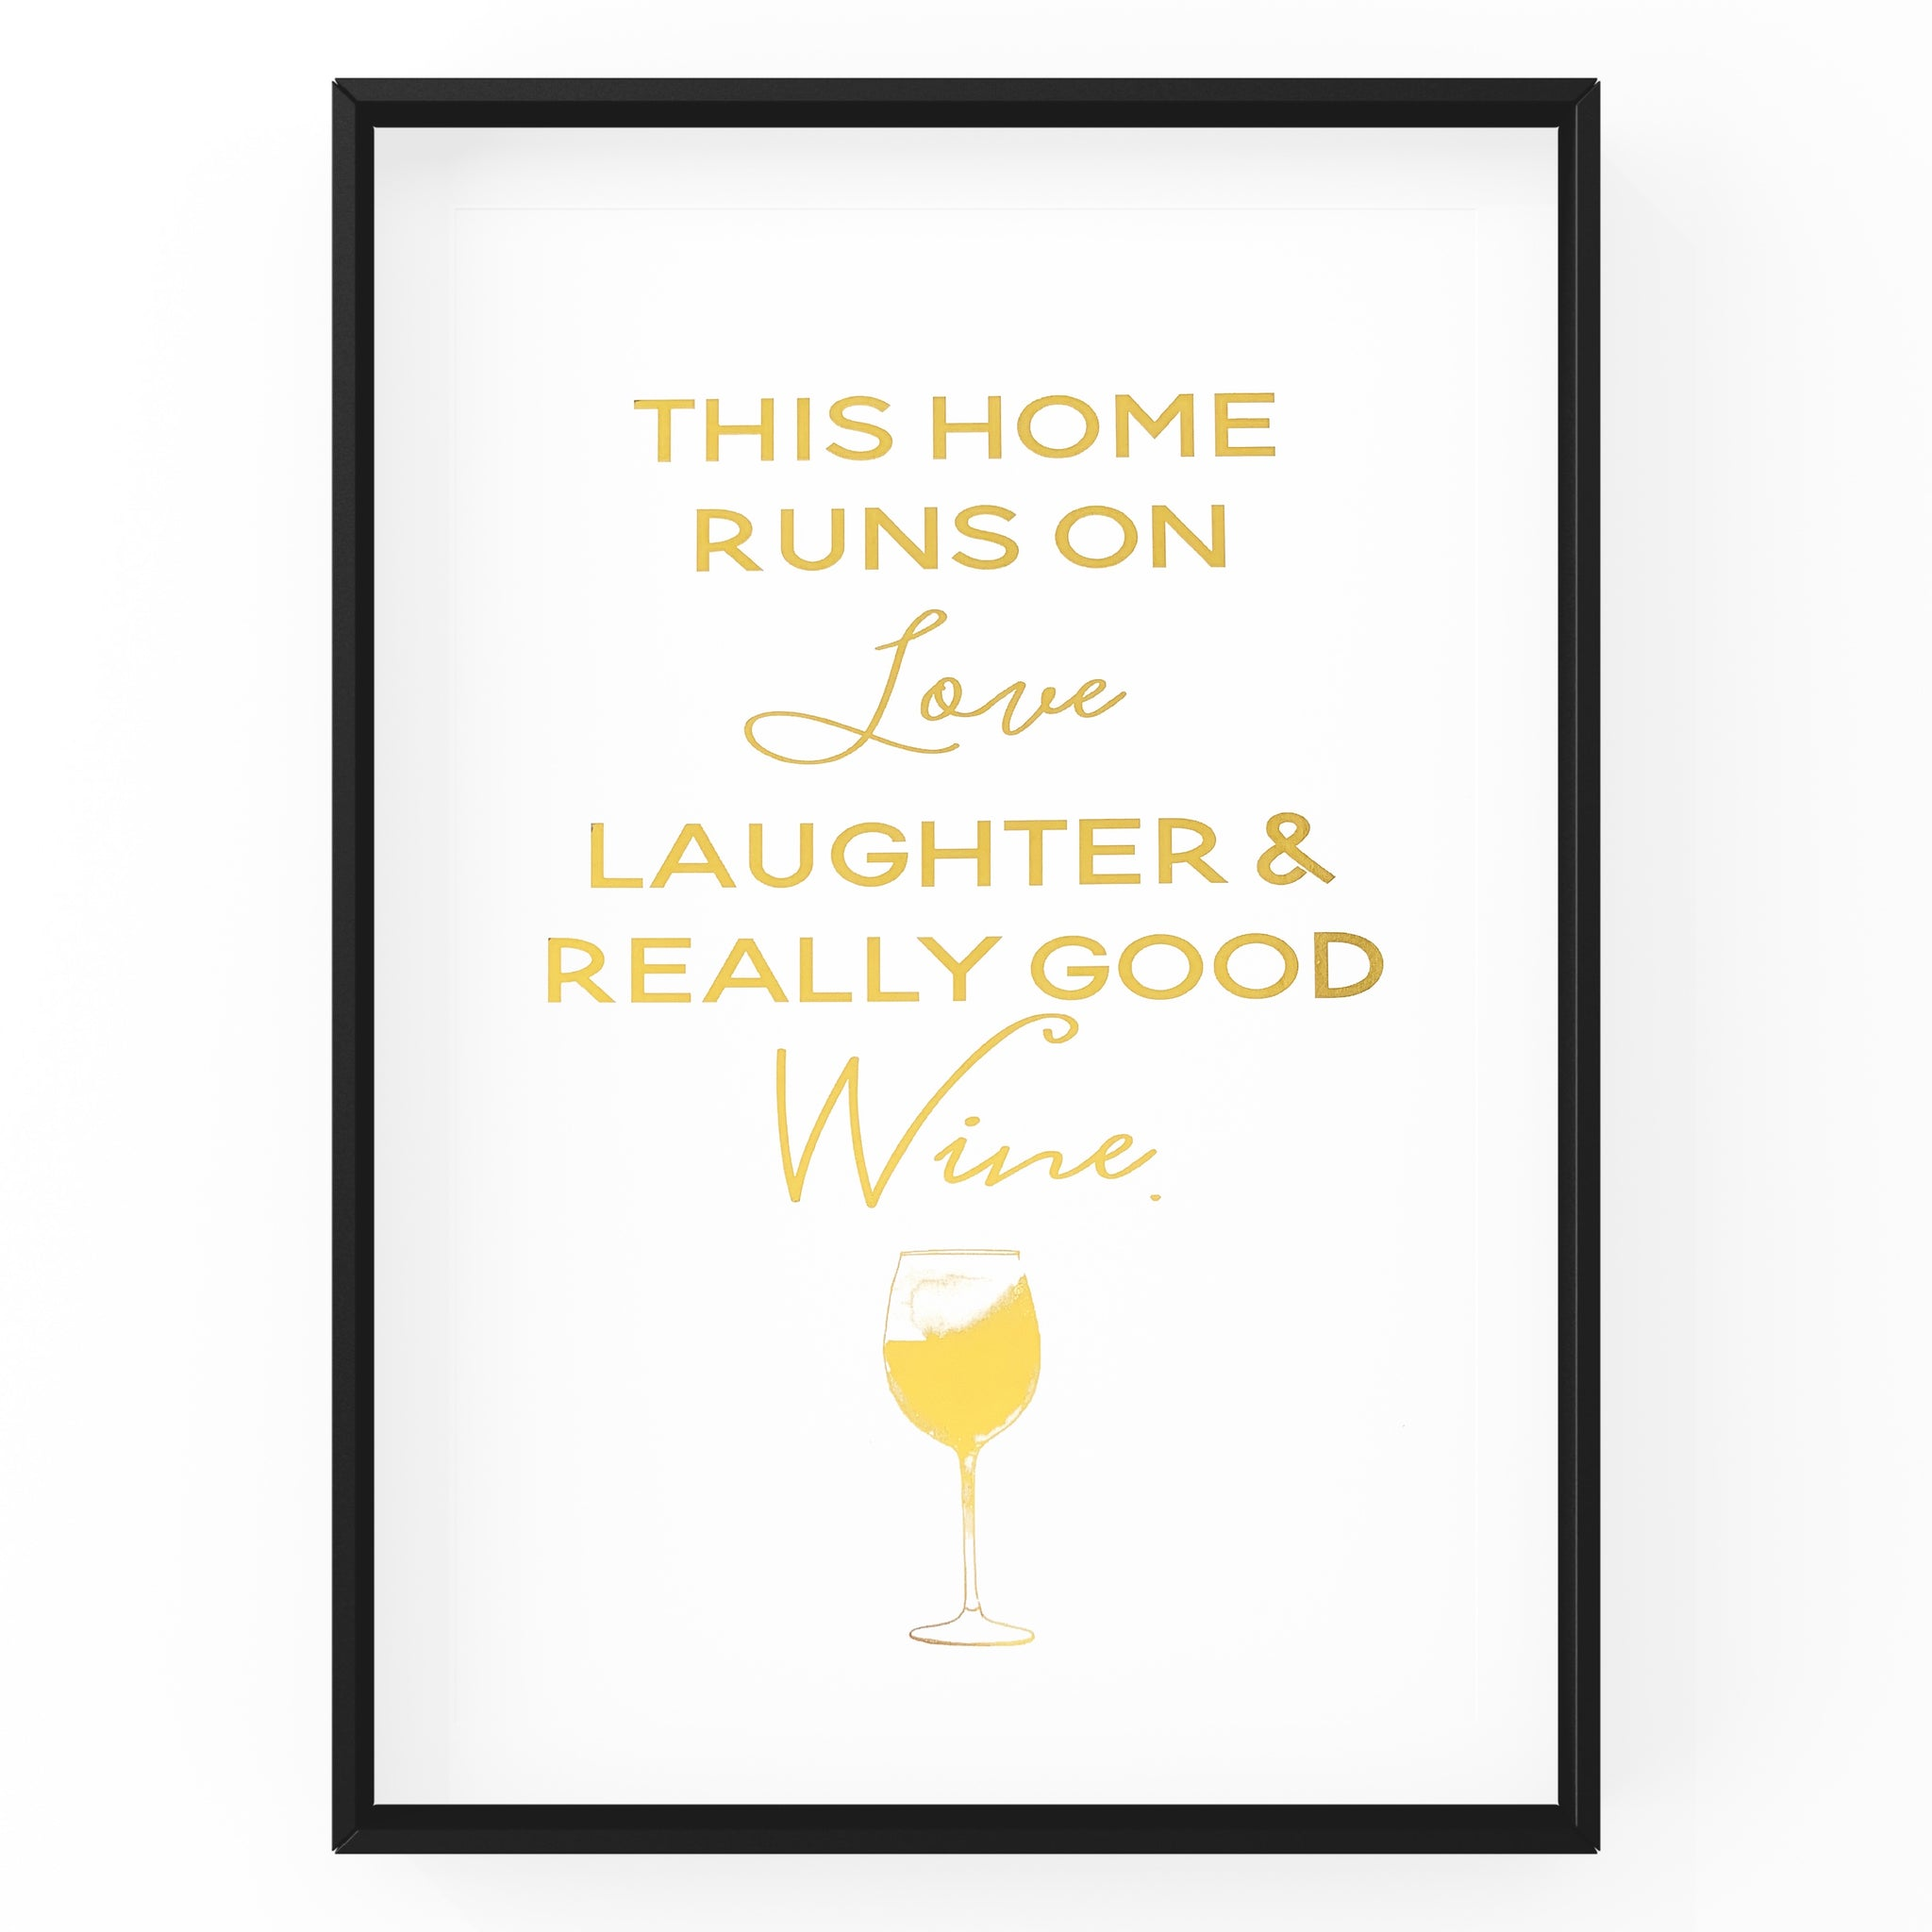 This Home Runs On Love Laughter & Really Good Wine - Foil Print